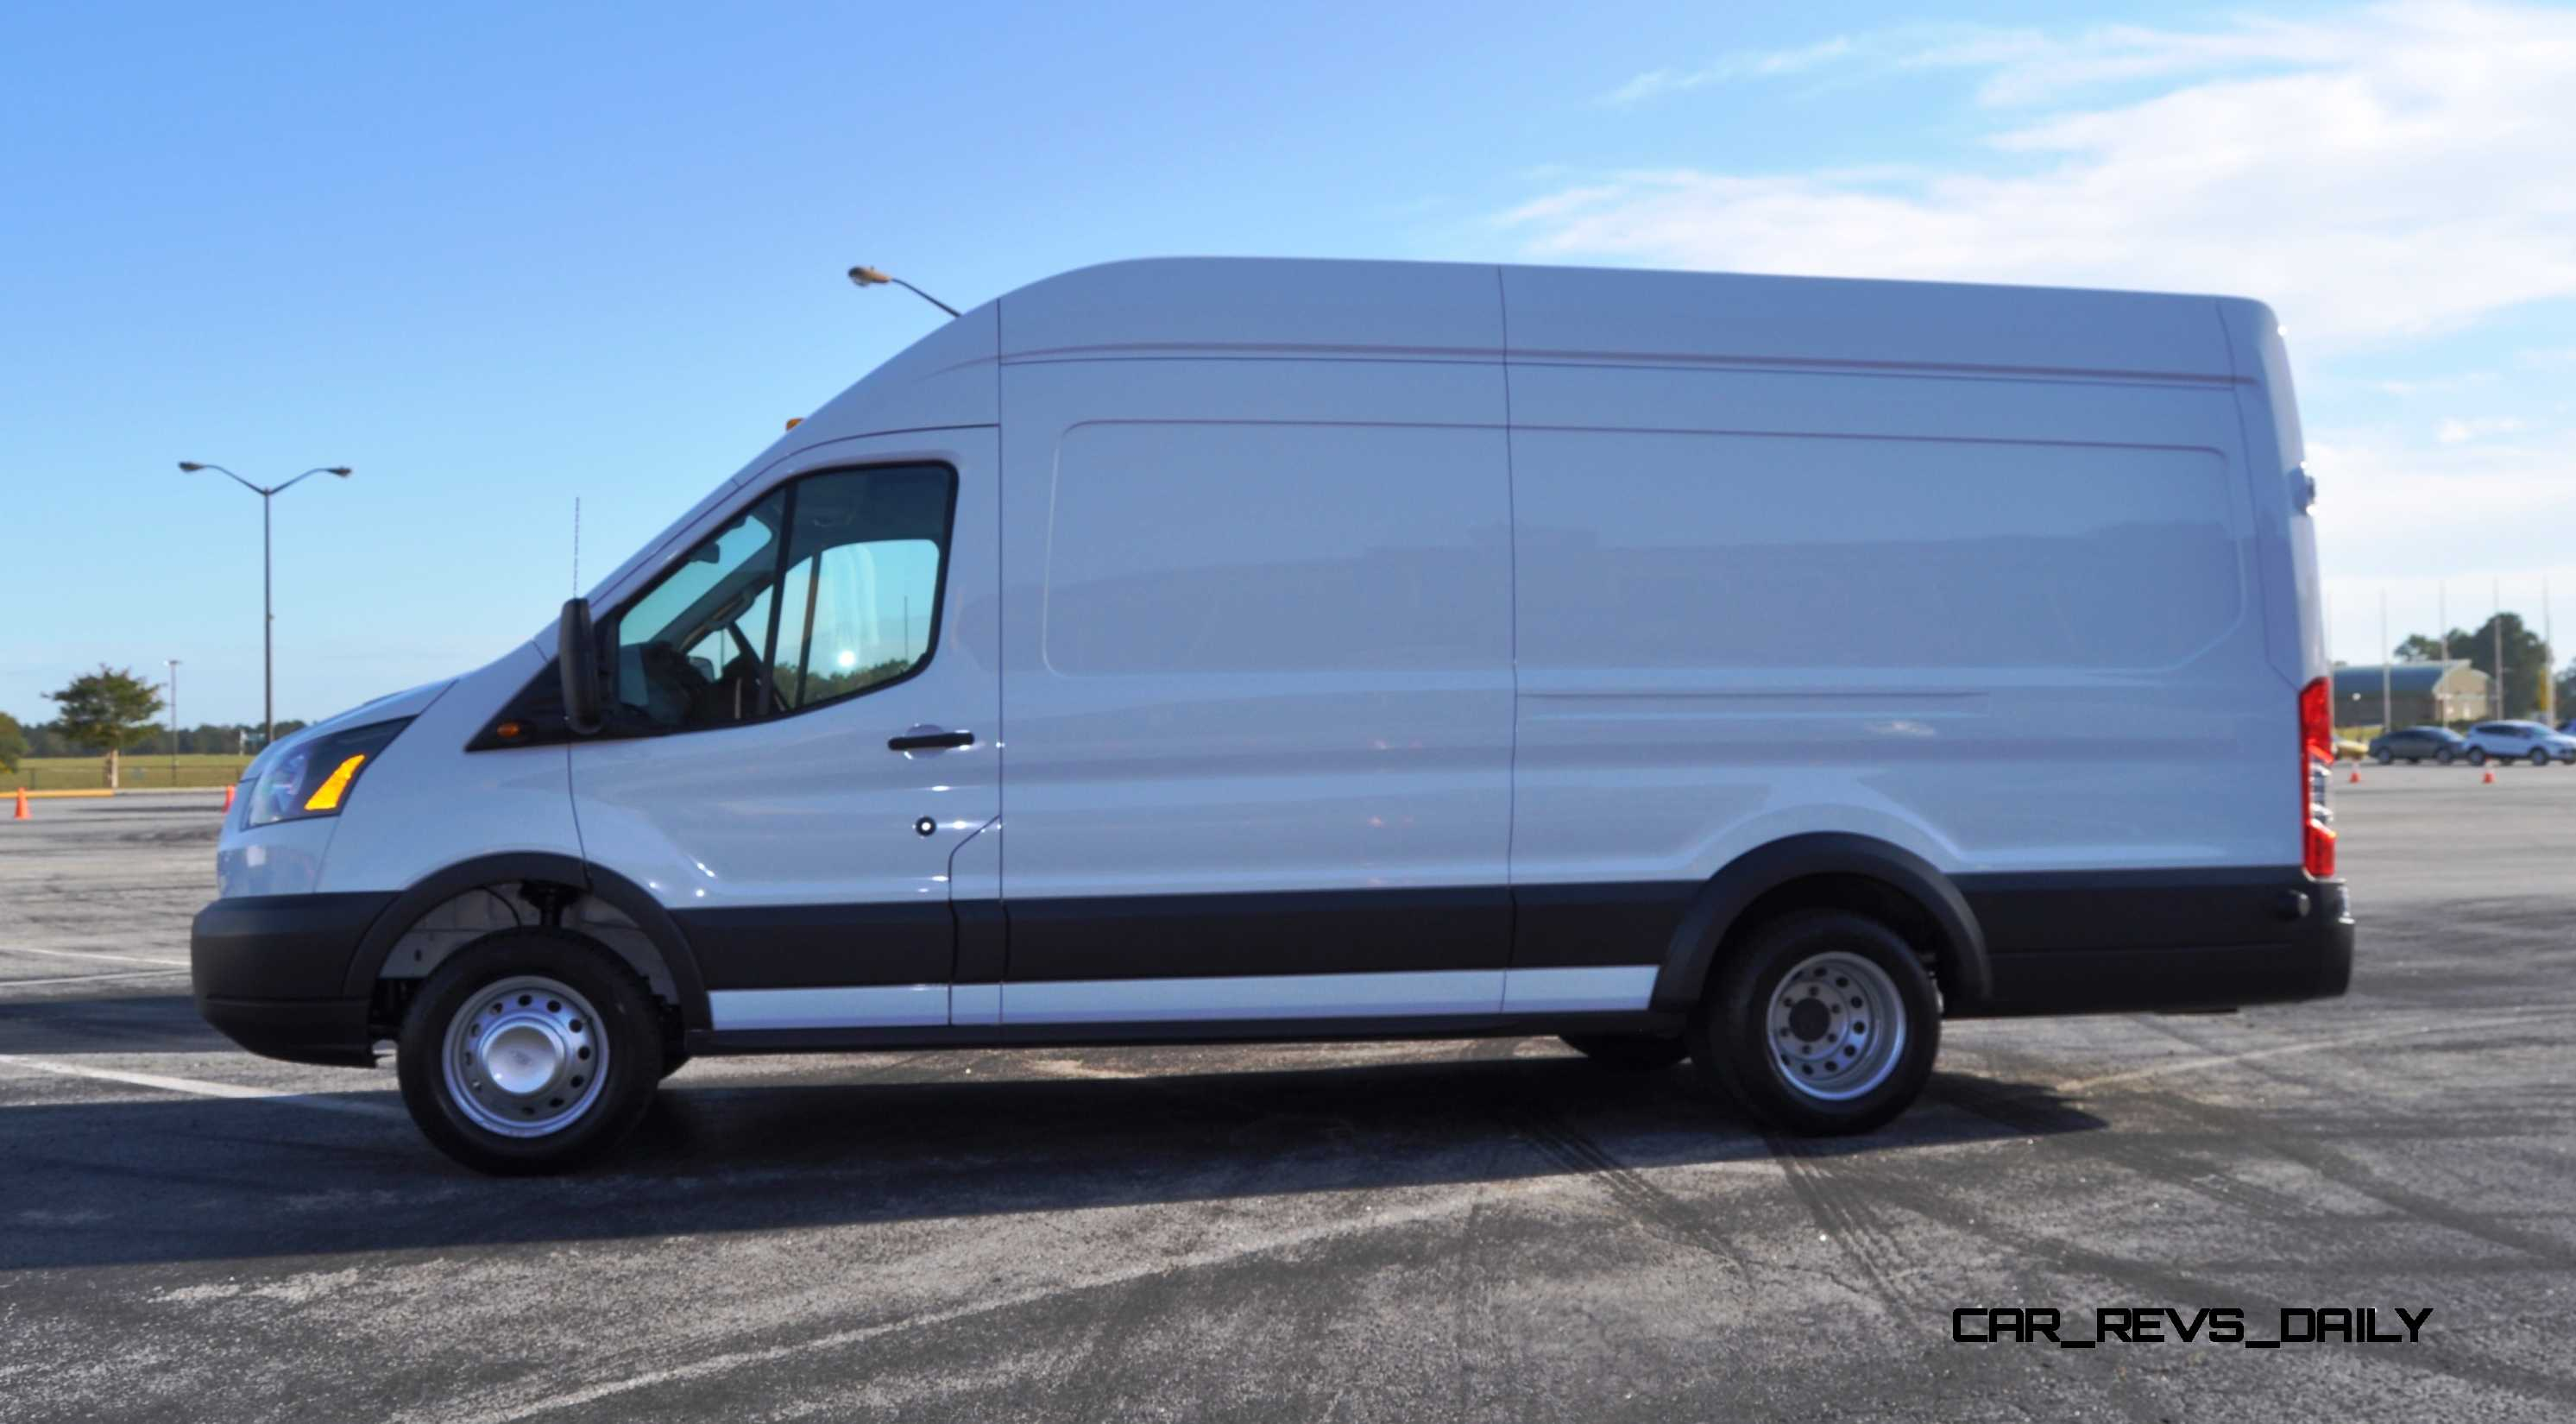 Hd track drive review 2015 ford transit powerstroke diesel high roof long box cargo van 10